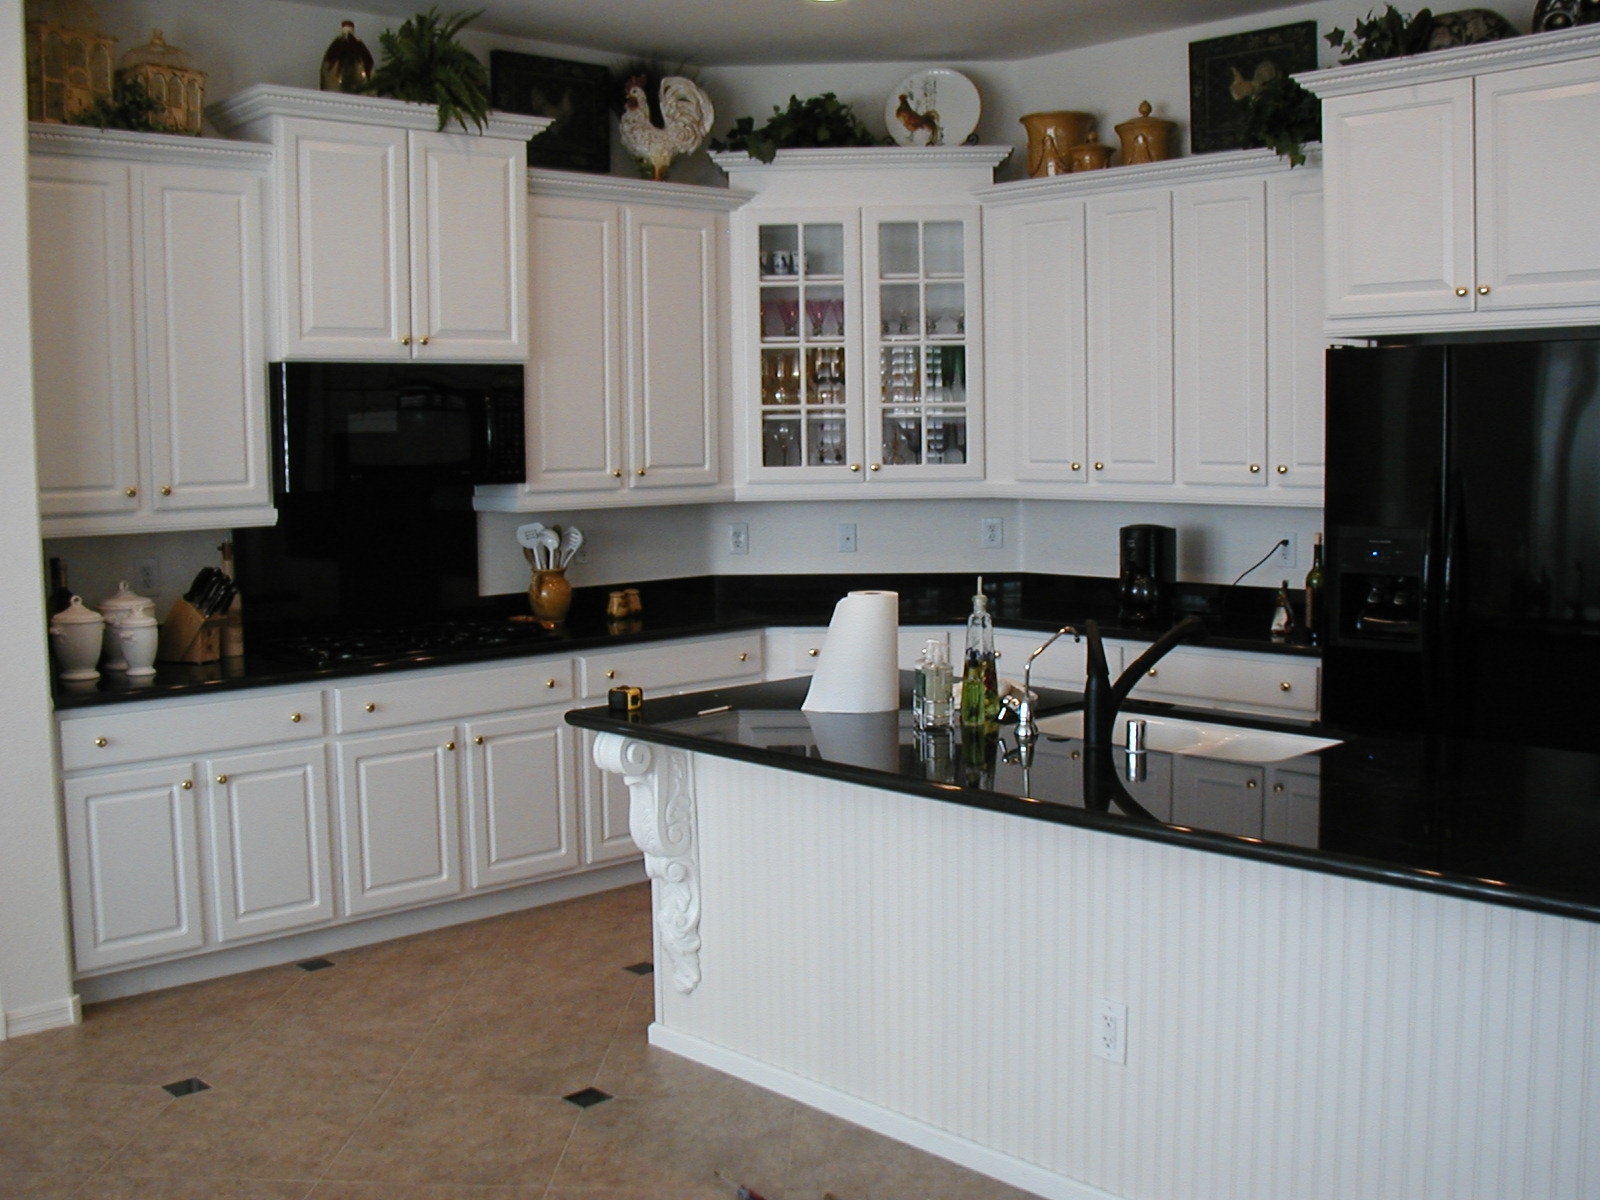 White Kitchens With Black Appliances